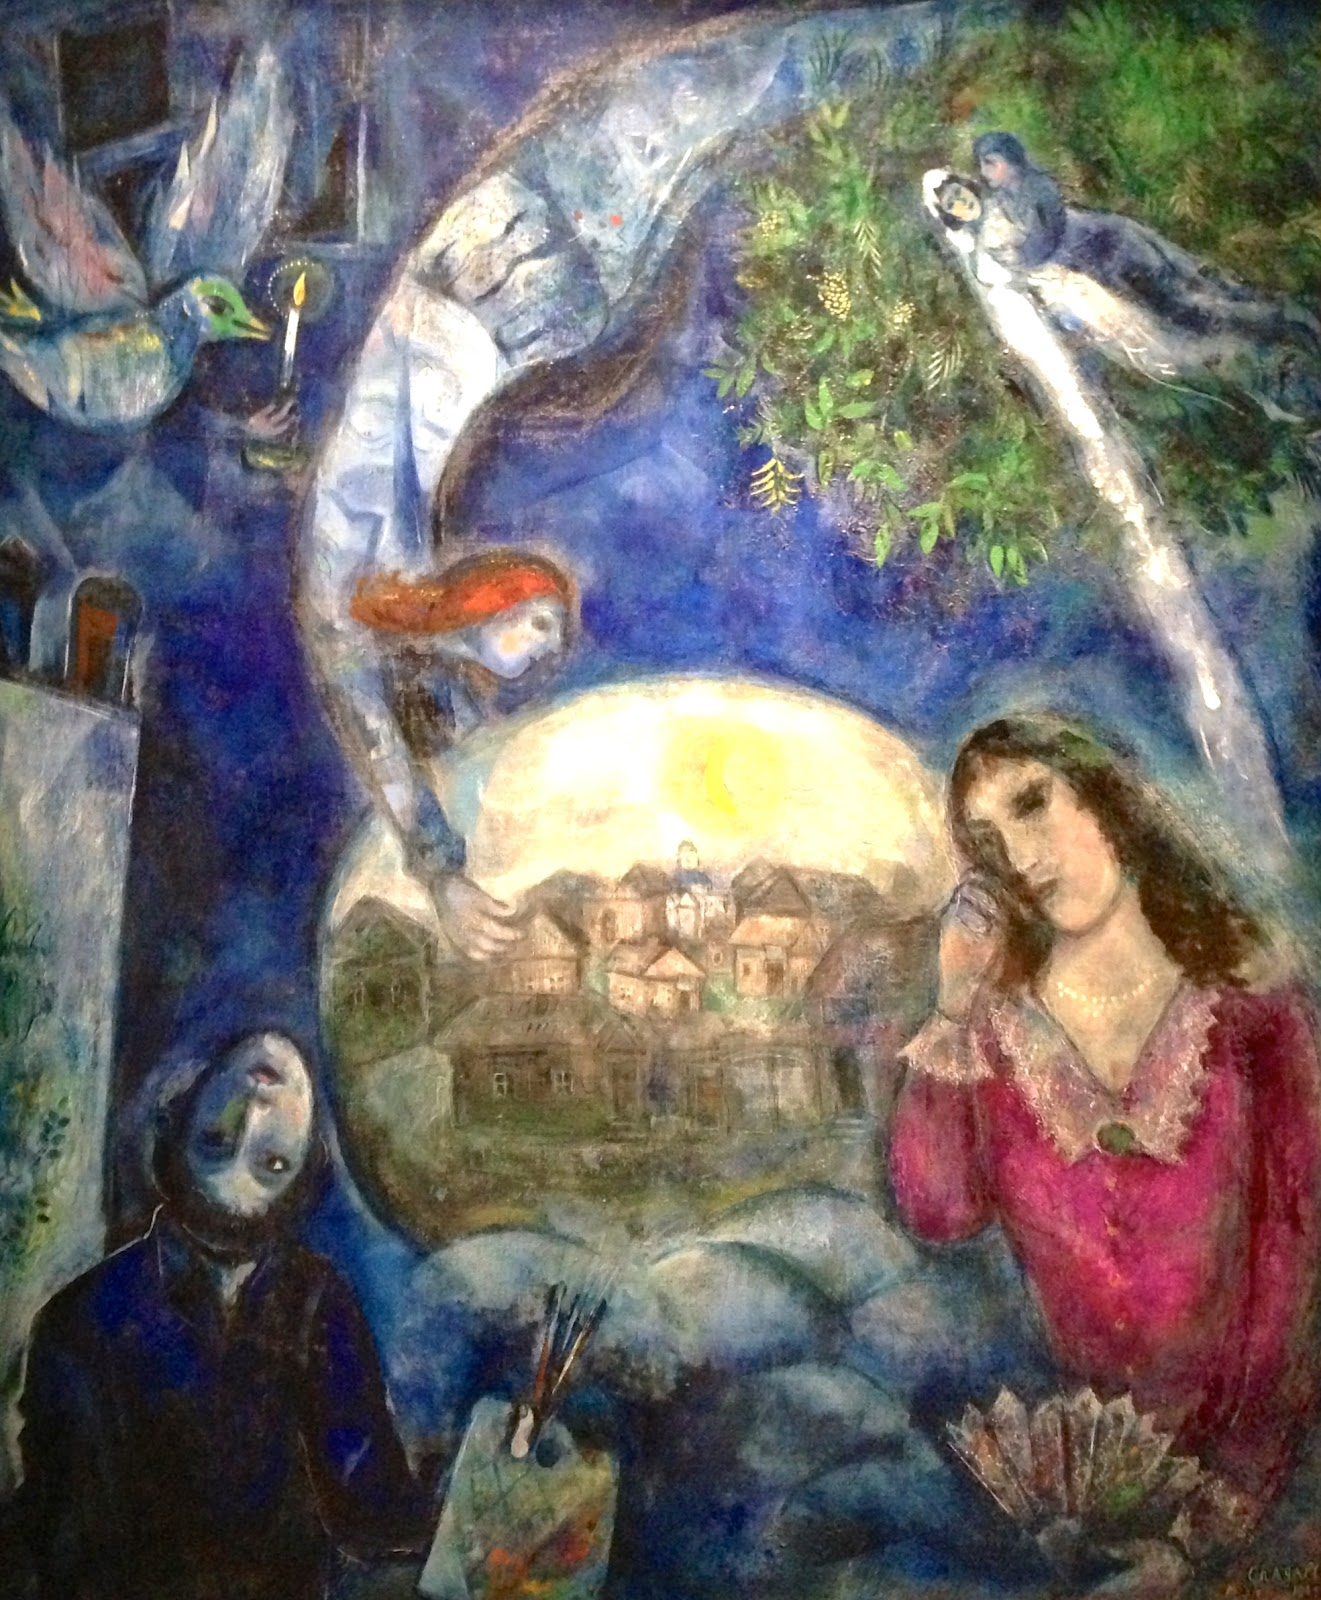 Around Her - Chagall